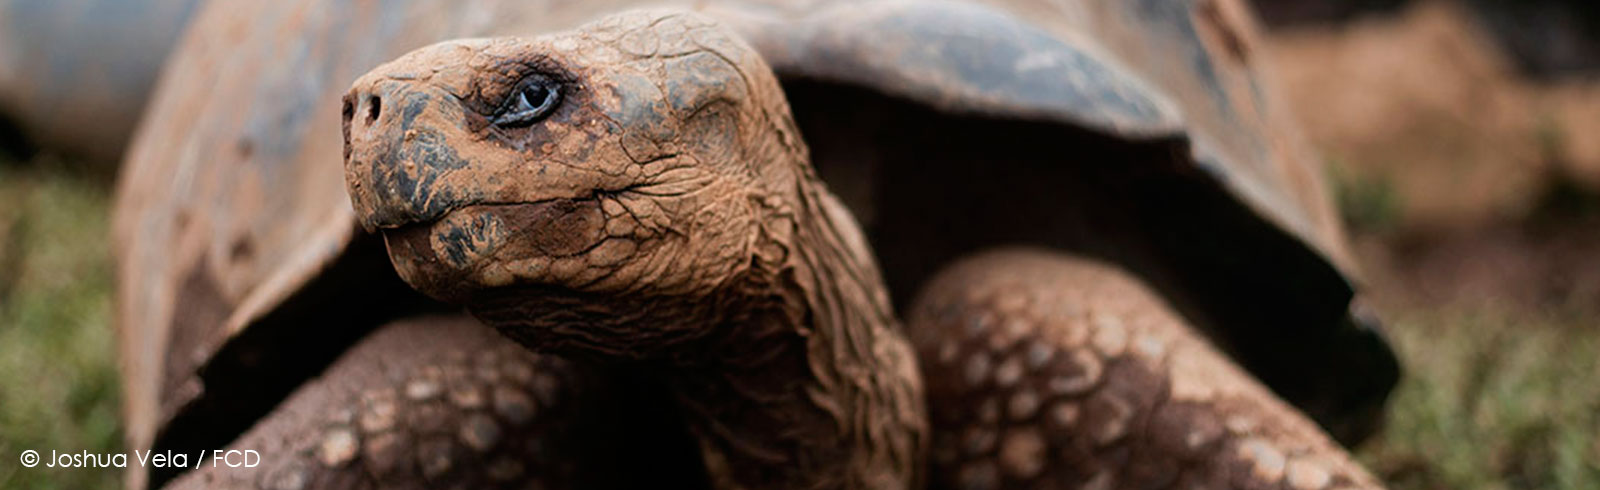 Conservation of Giant Tortoises